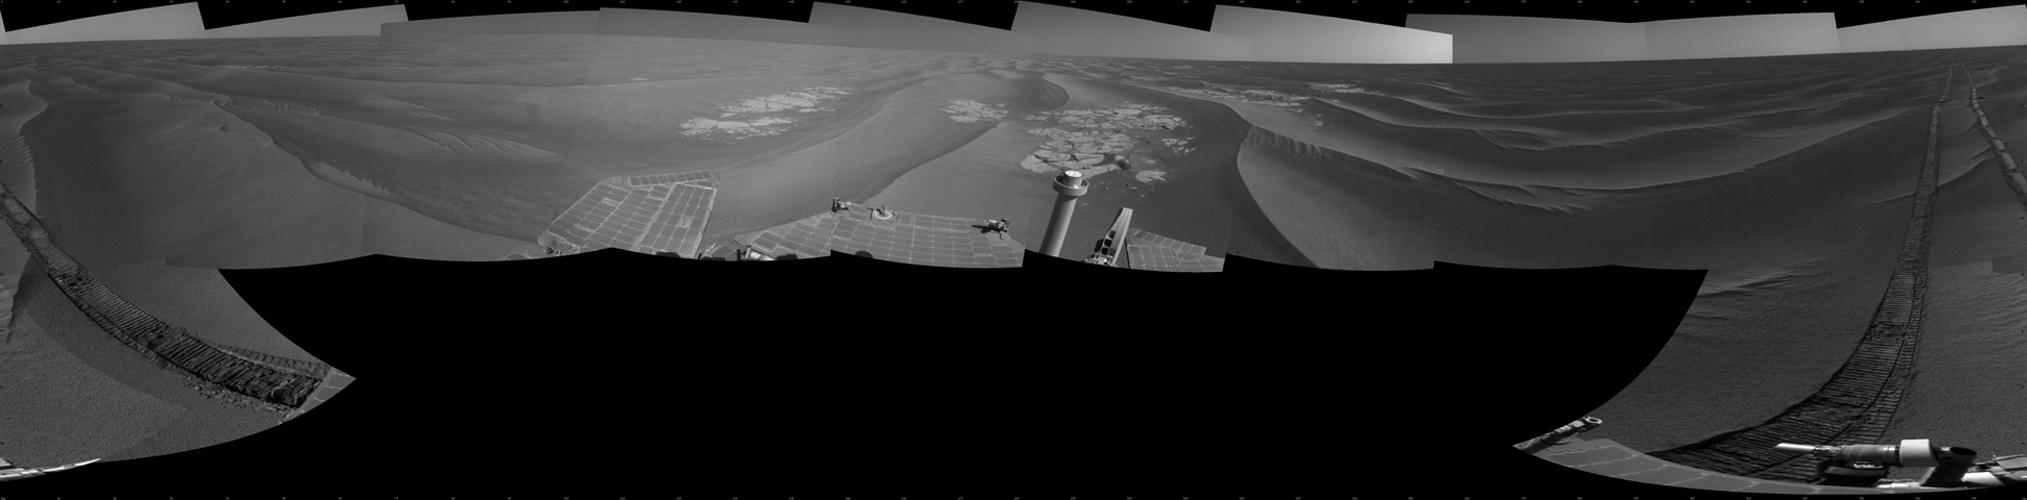 NASA's rover Opportunity used its navigation camera to take the images combined into this full 360-degree view of the rover's surroundings after a drive on the 2,220th Martian day, or sol, of Opportunity's mission on Mars (April 22, 2010).